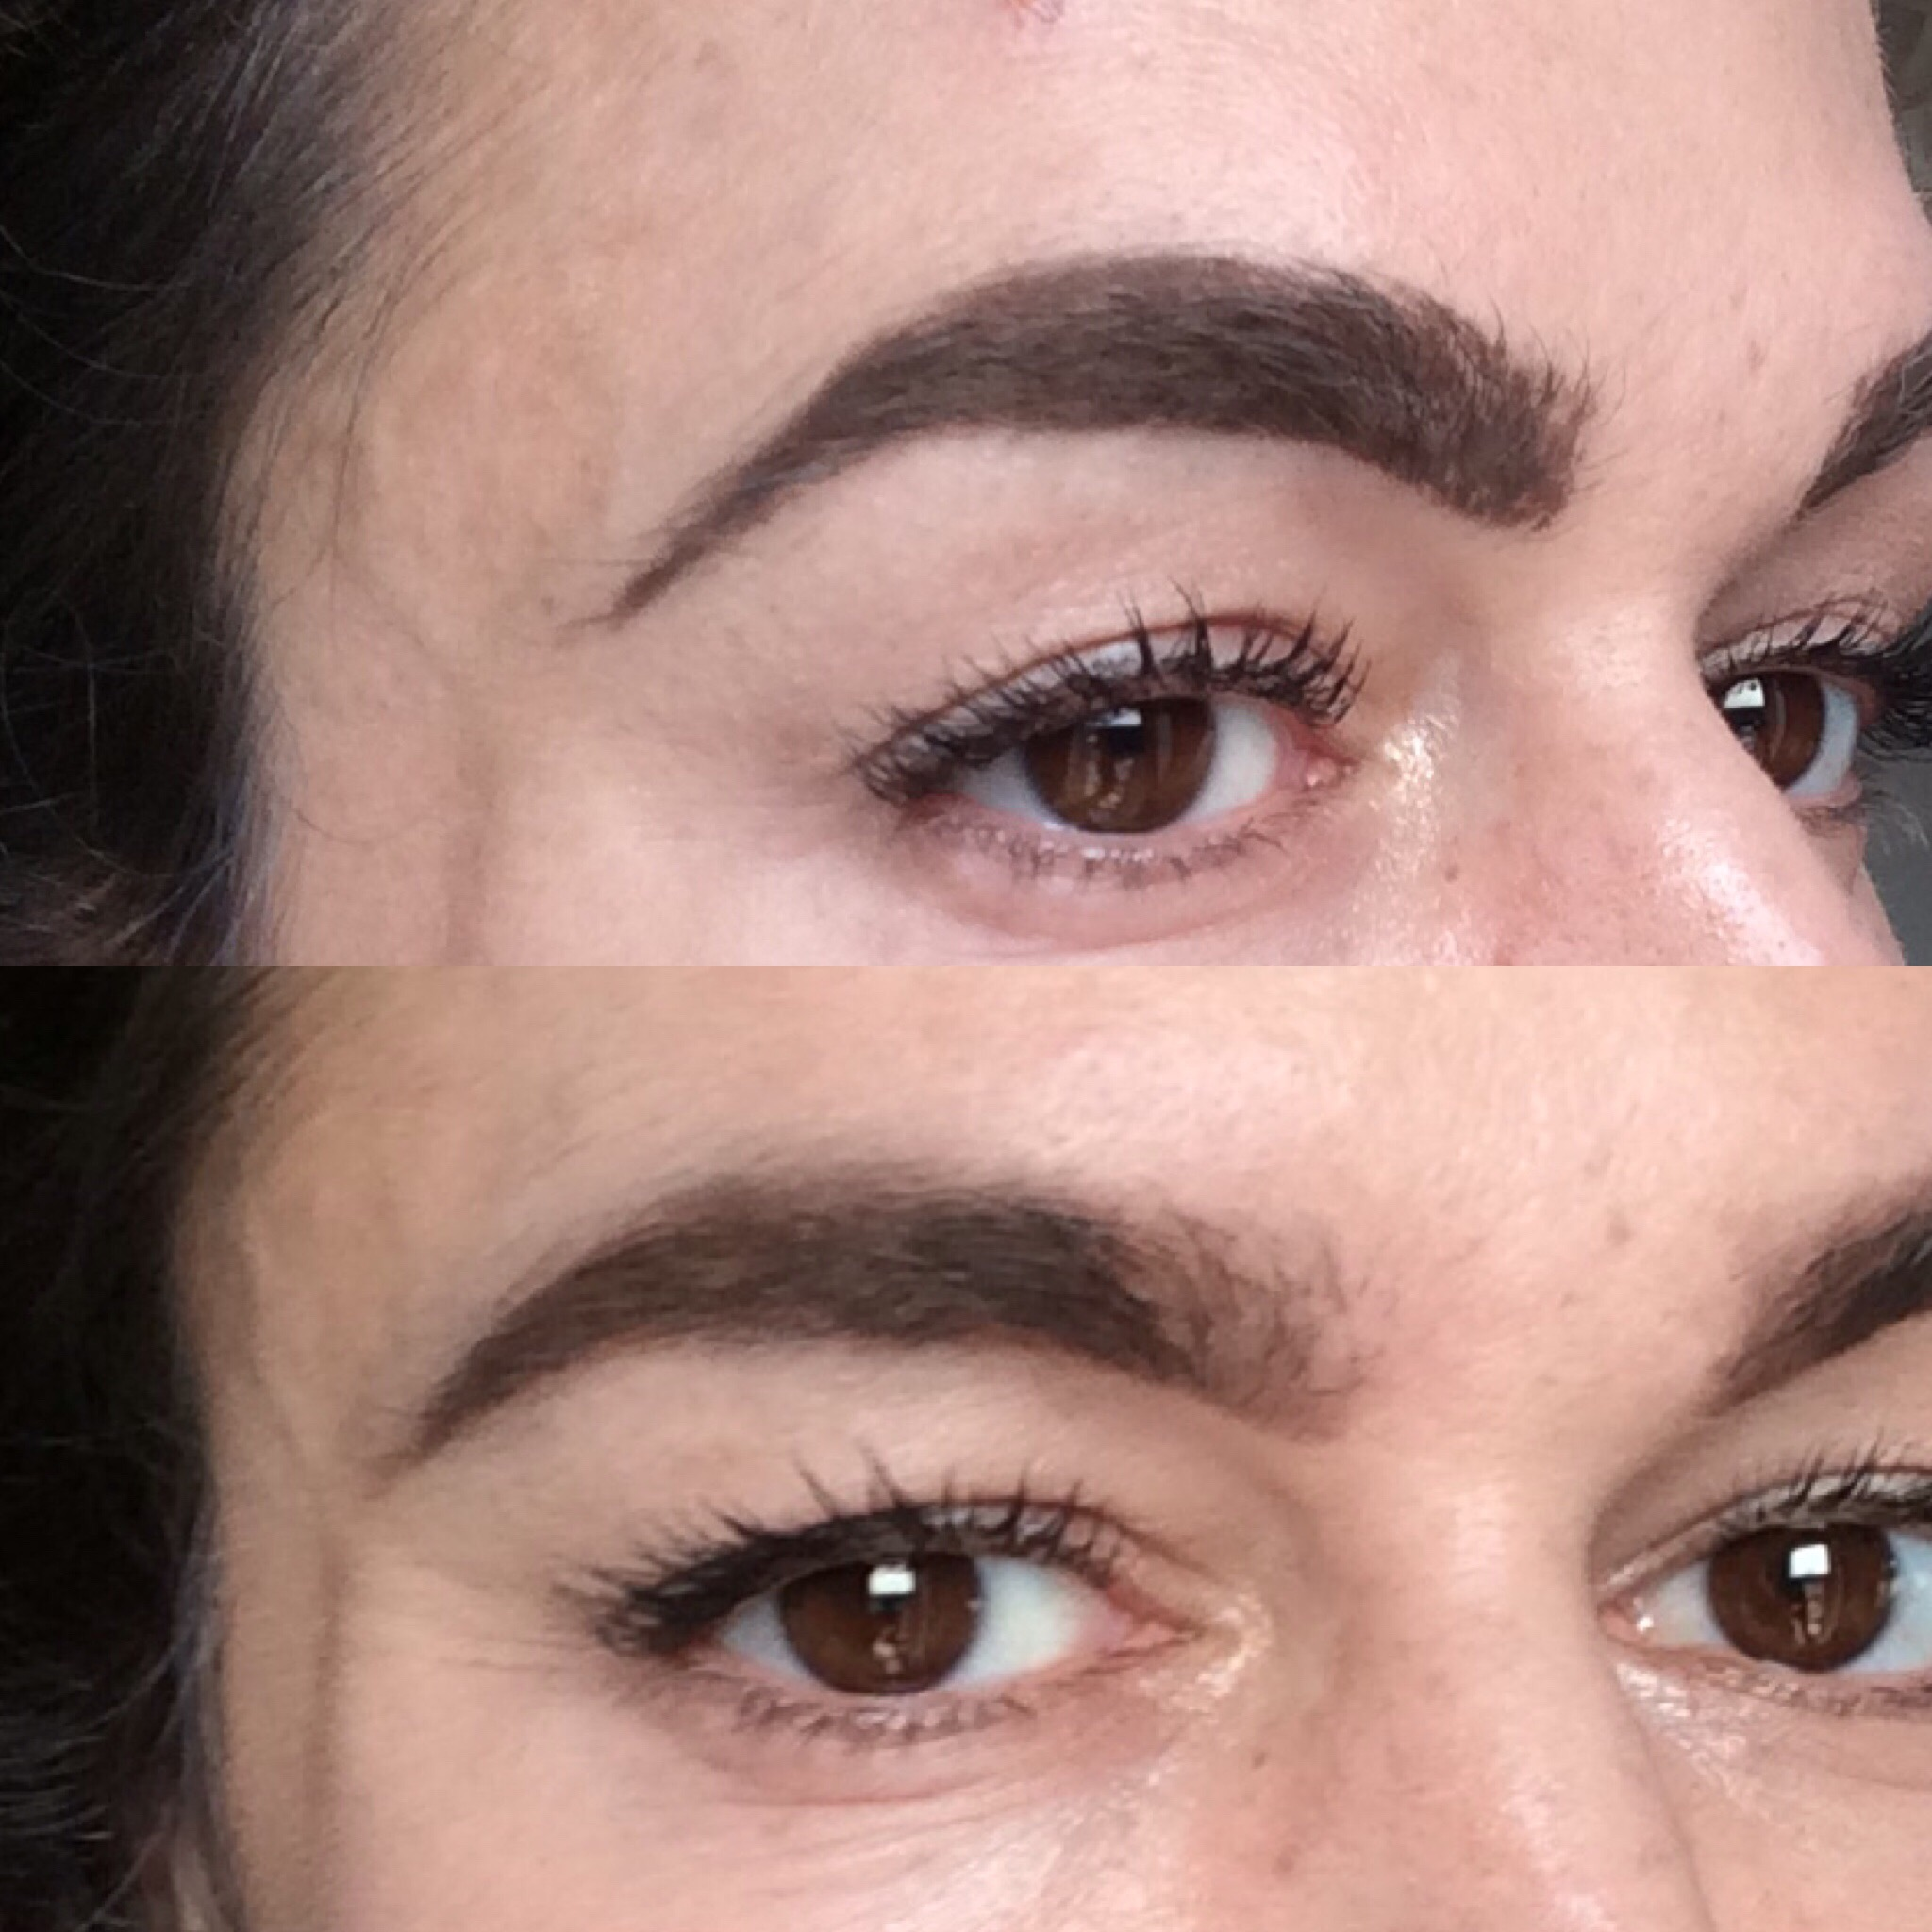 correcting makeup mistakes dense brows blended with spoolie, powder and concealer